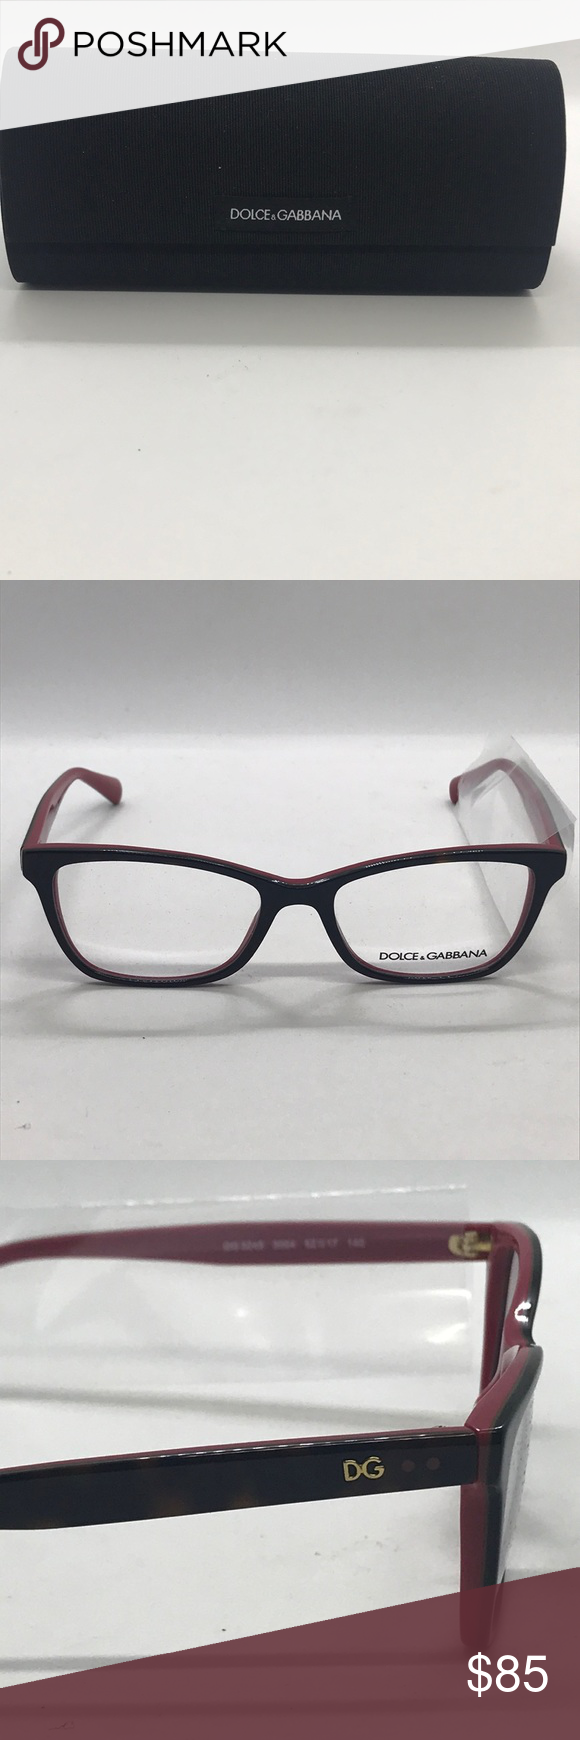 0092b8b0ddf Authentic Dolce and Gabbana eye glasses rx Dolce Eye Glasses with demo  lenses included pink and